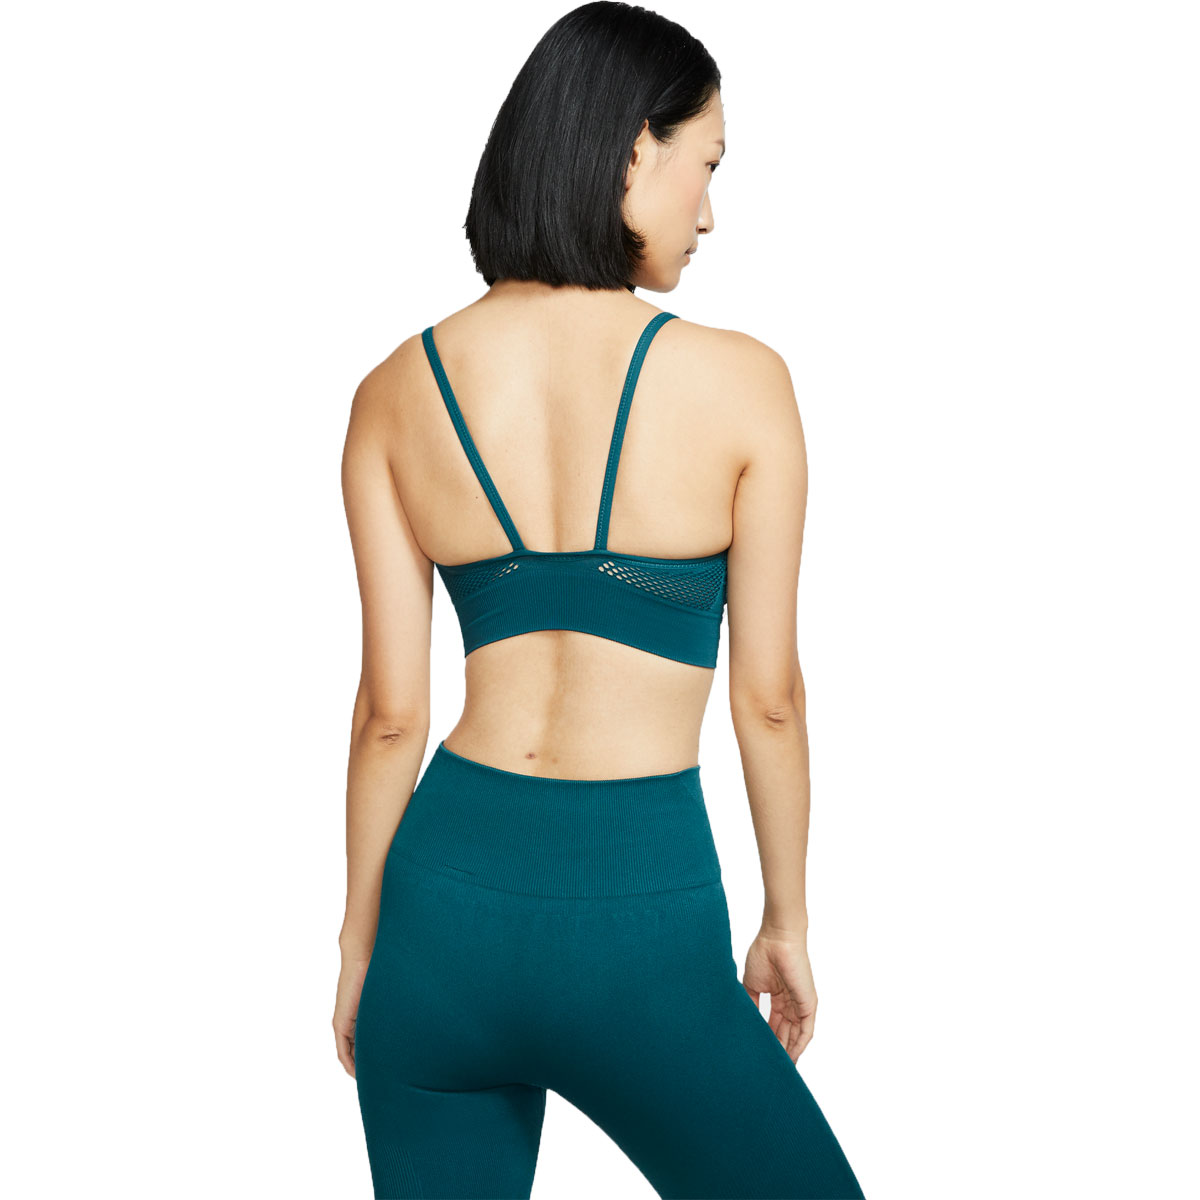 Women's Nike Seamless Light Bra  - Color: Midnight Turquoise - Size: XL, Midnight Turquoise, large, image 2